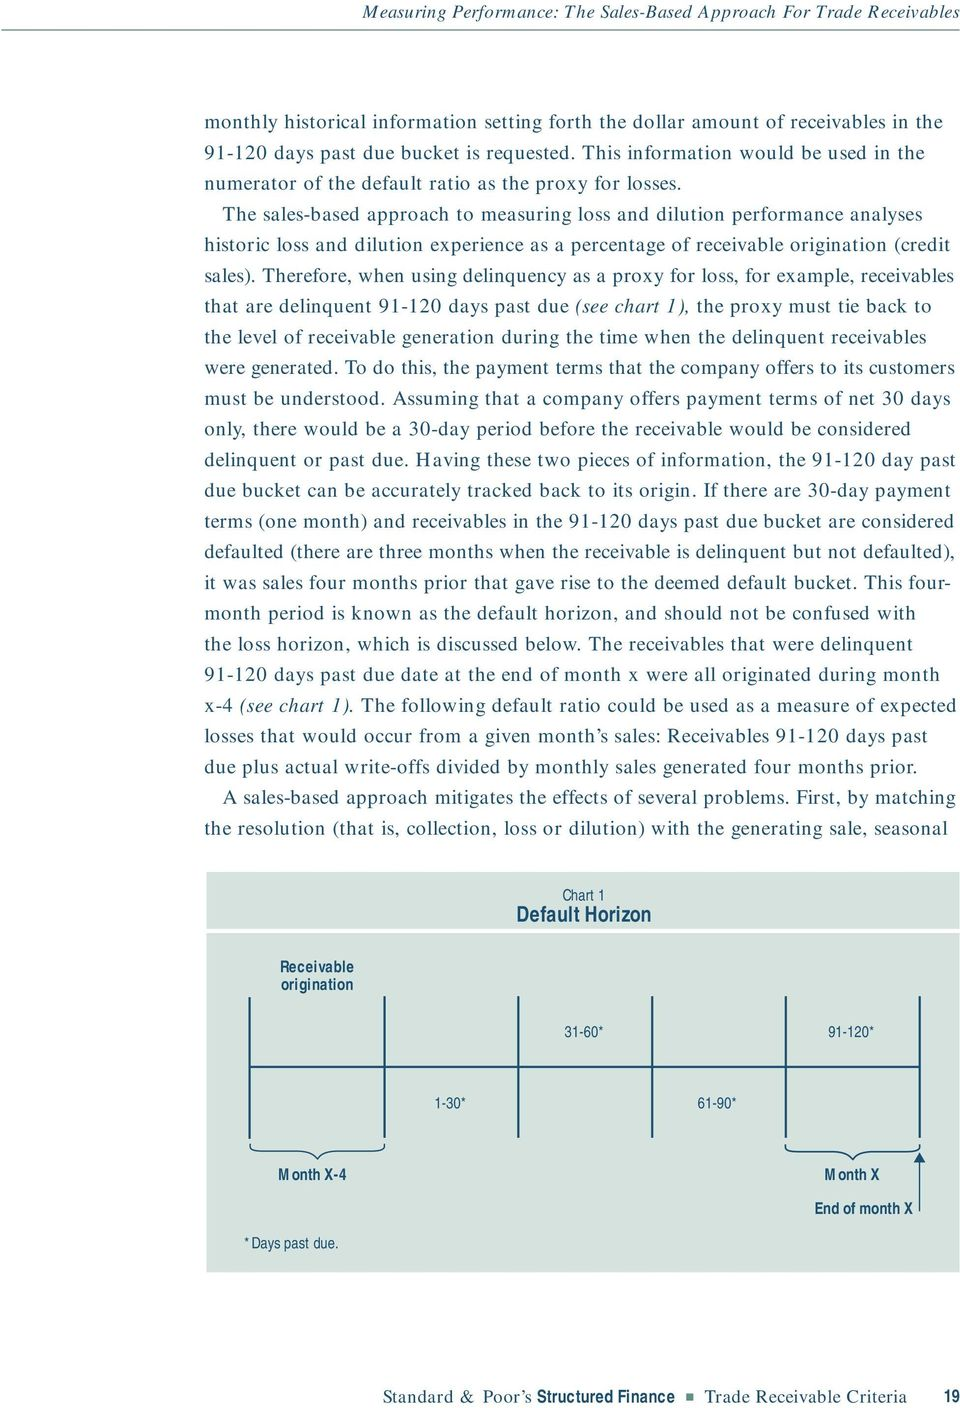 The sales-based approach to measuring loss and dilution performance analyses historic loss and dilution experience as a percentage of receivable origination (credit sales).